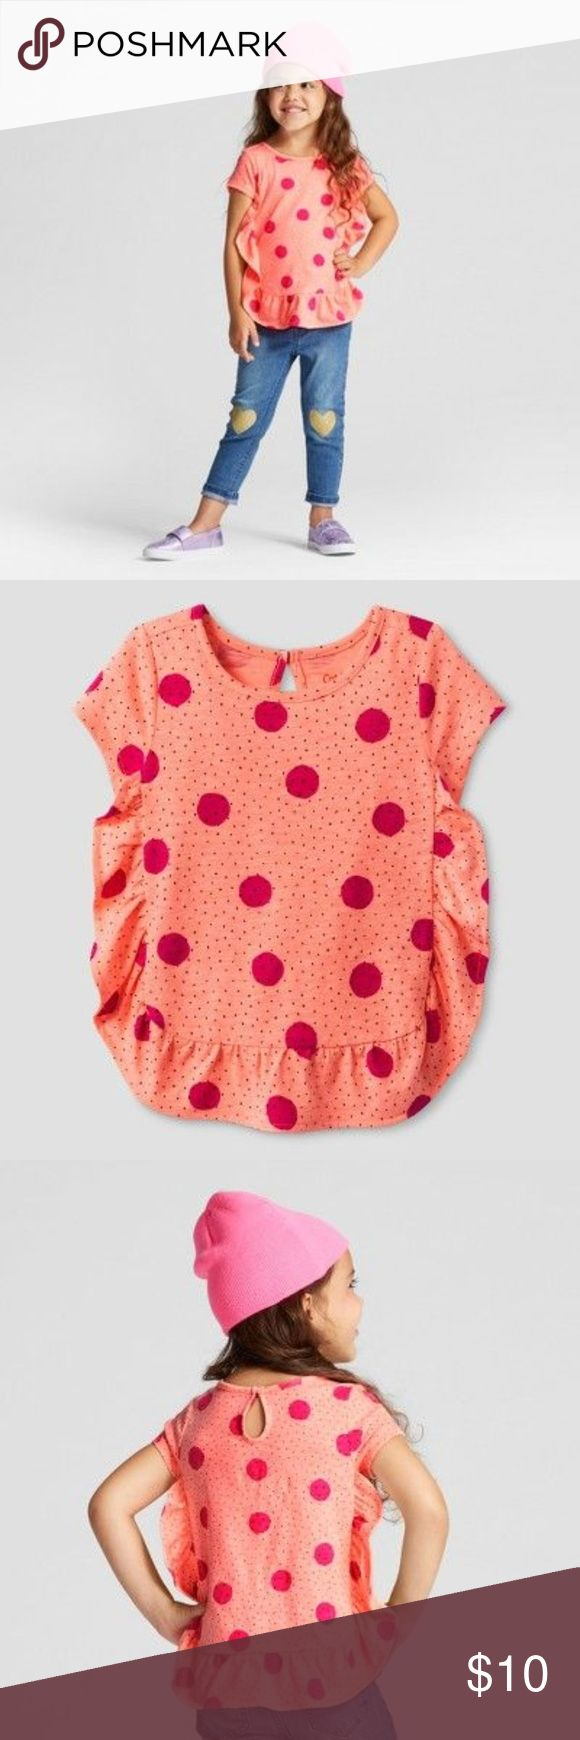 New CAT & JACK Moxie Peach Polka Dot Top Your girl will love showing off her cool style even when she's keeping her look comfy and casual with the Short-Sleeve T-Shirt from Cat and Jack. This peach T-shirt adds a fun flair with the ruffled detail, polka dots and keyhole cutout on the back. When she's just hanging out, she'll love pairing this shirt with jeans and sneakers.  available in size 12M | 18M | 2T condition: new without tags color: moxie peach  @cjrose25 Cat & Jack Shirts & Tops…